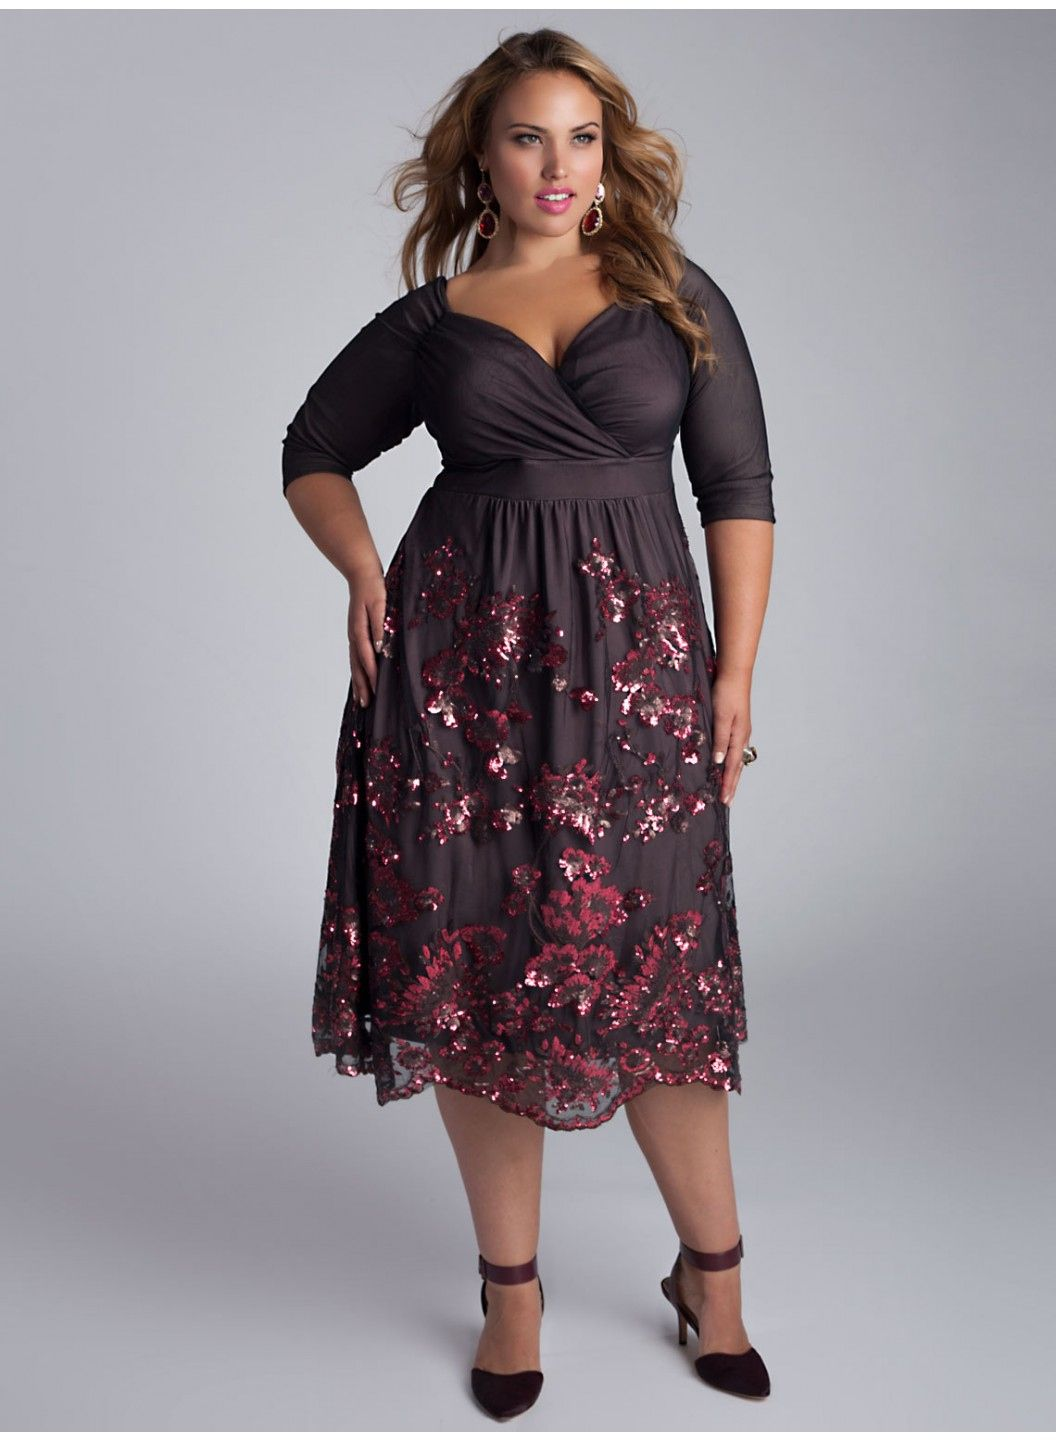 Dresses to wear to a fall wedding for a guest  Plus Size Dresses Wear Guest Wedding  Wedding Dresses for Fall